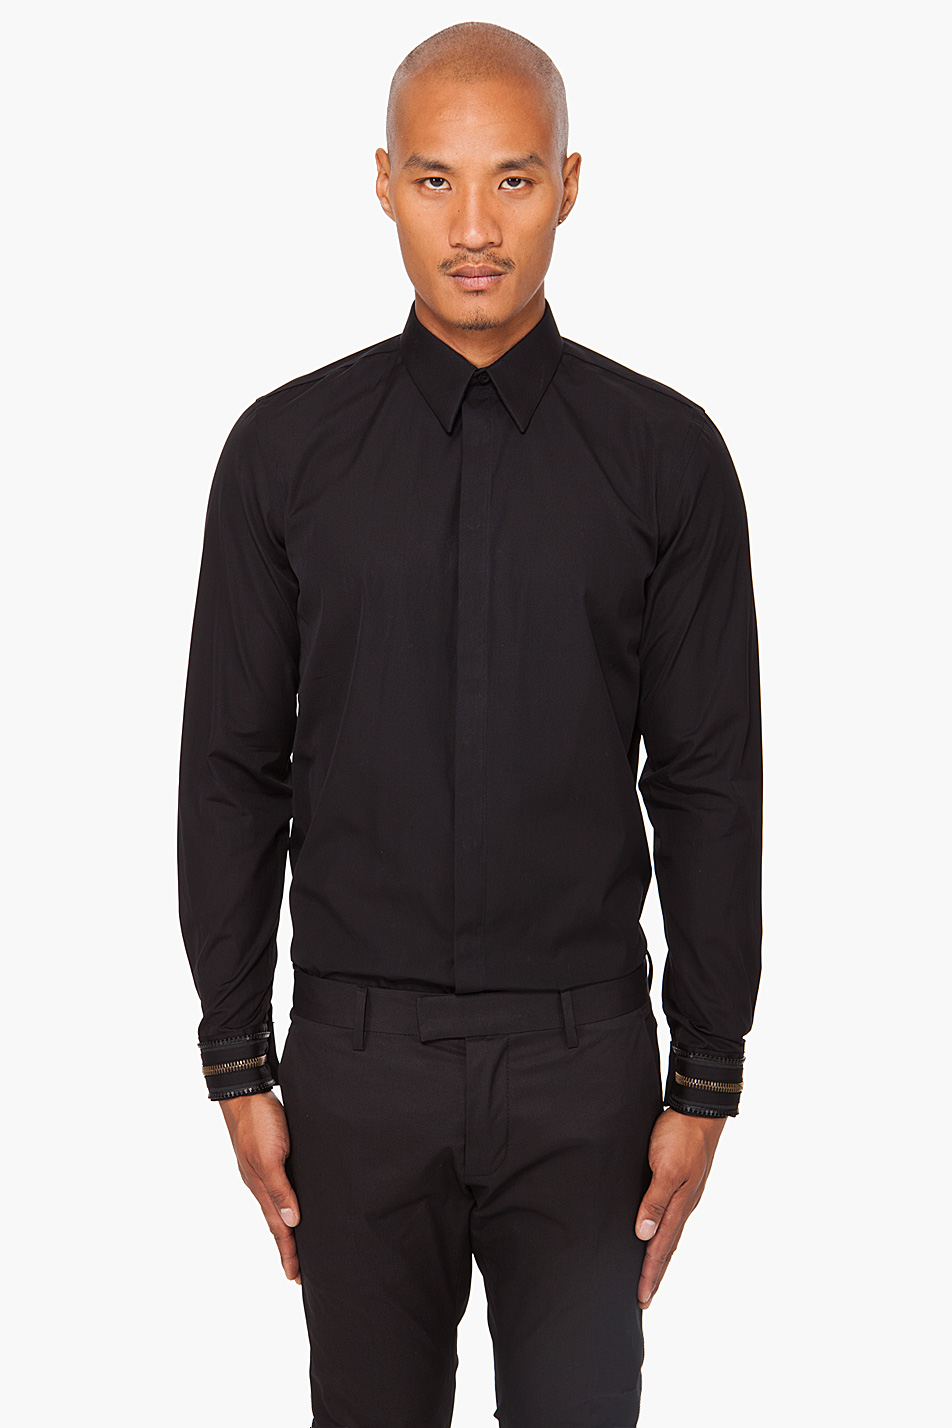 Givenchy Zip Cuff Button Down Shirt In Black For Men Lyst